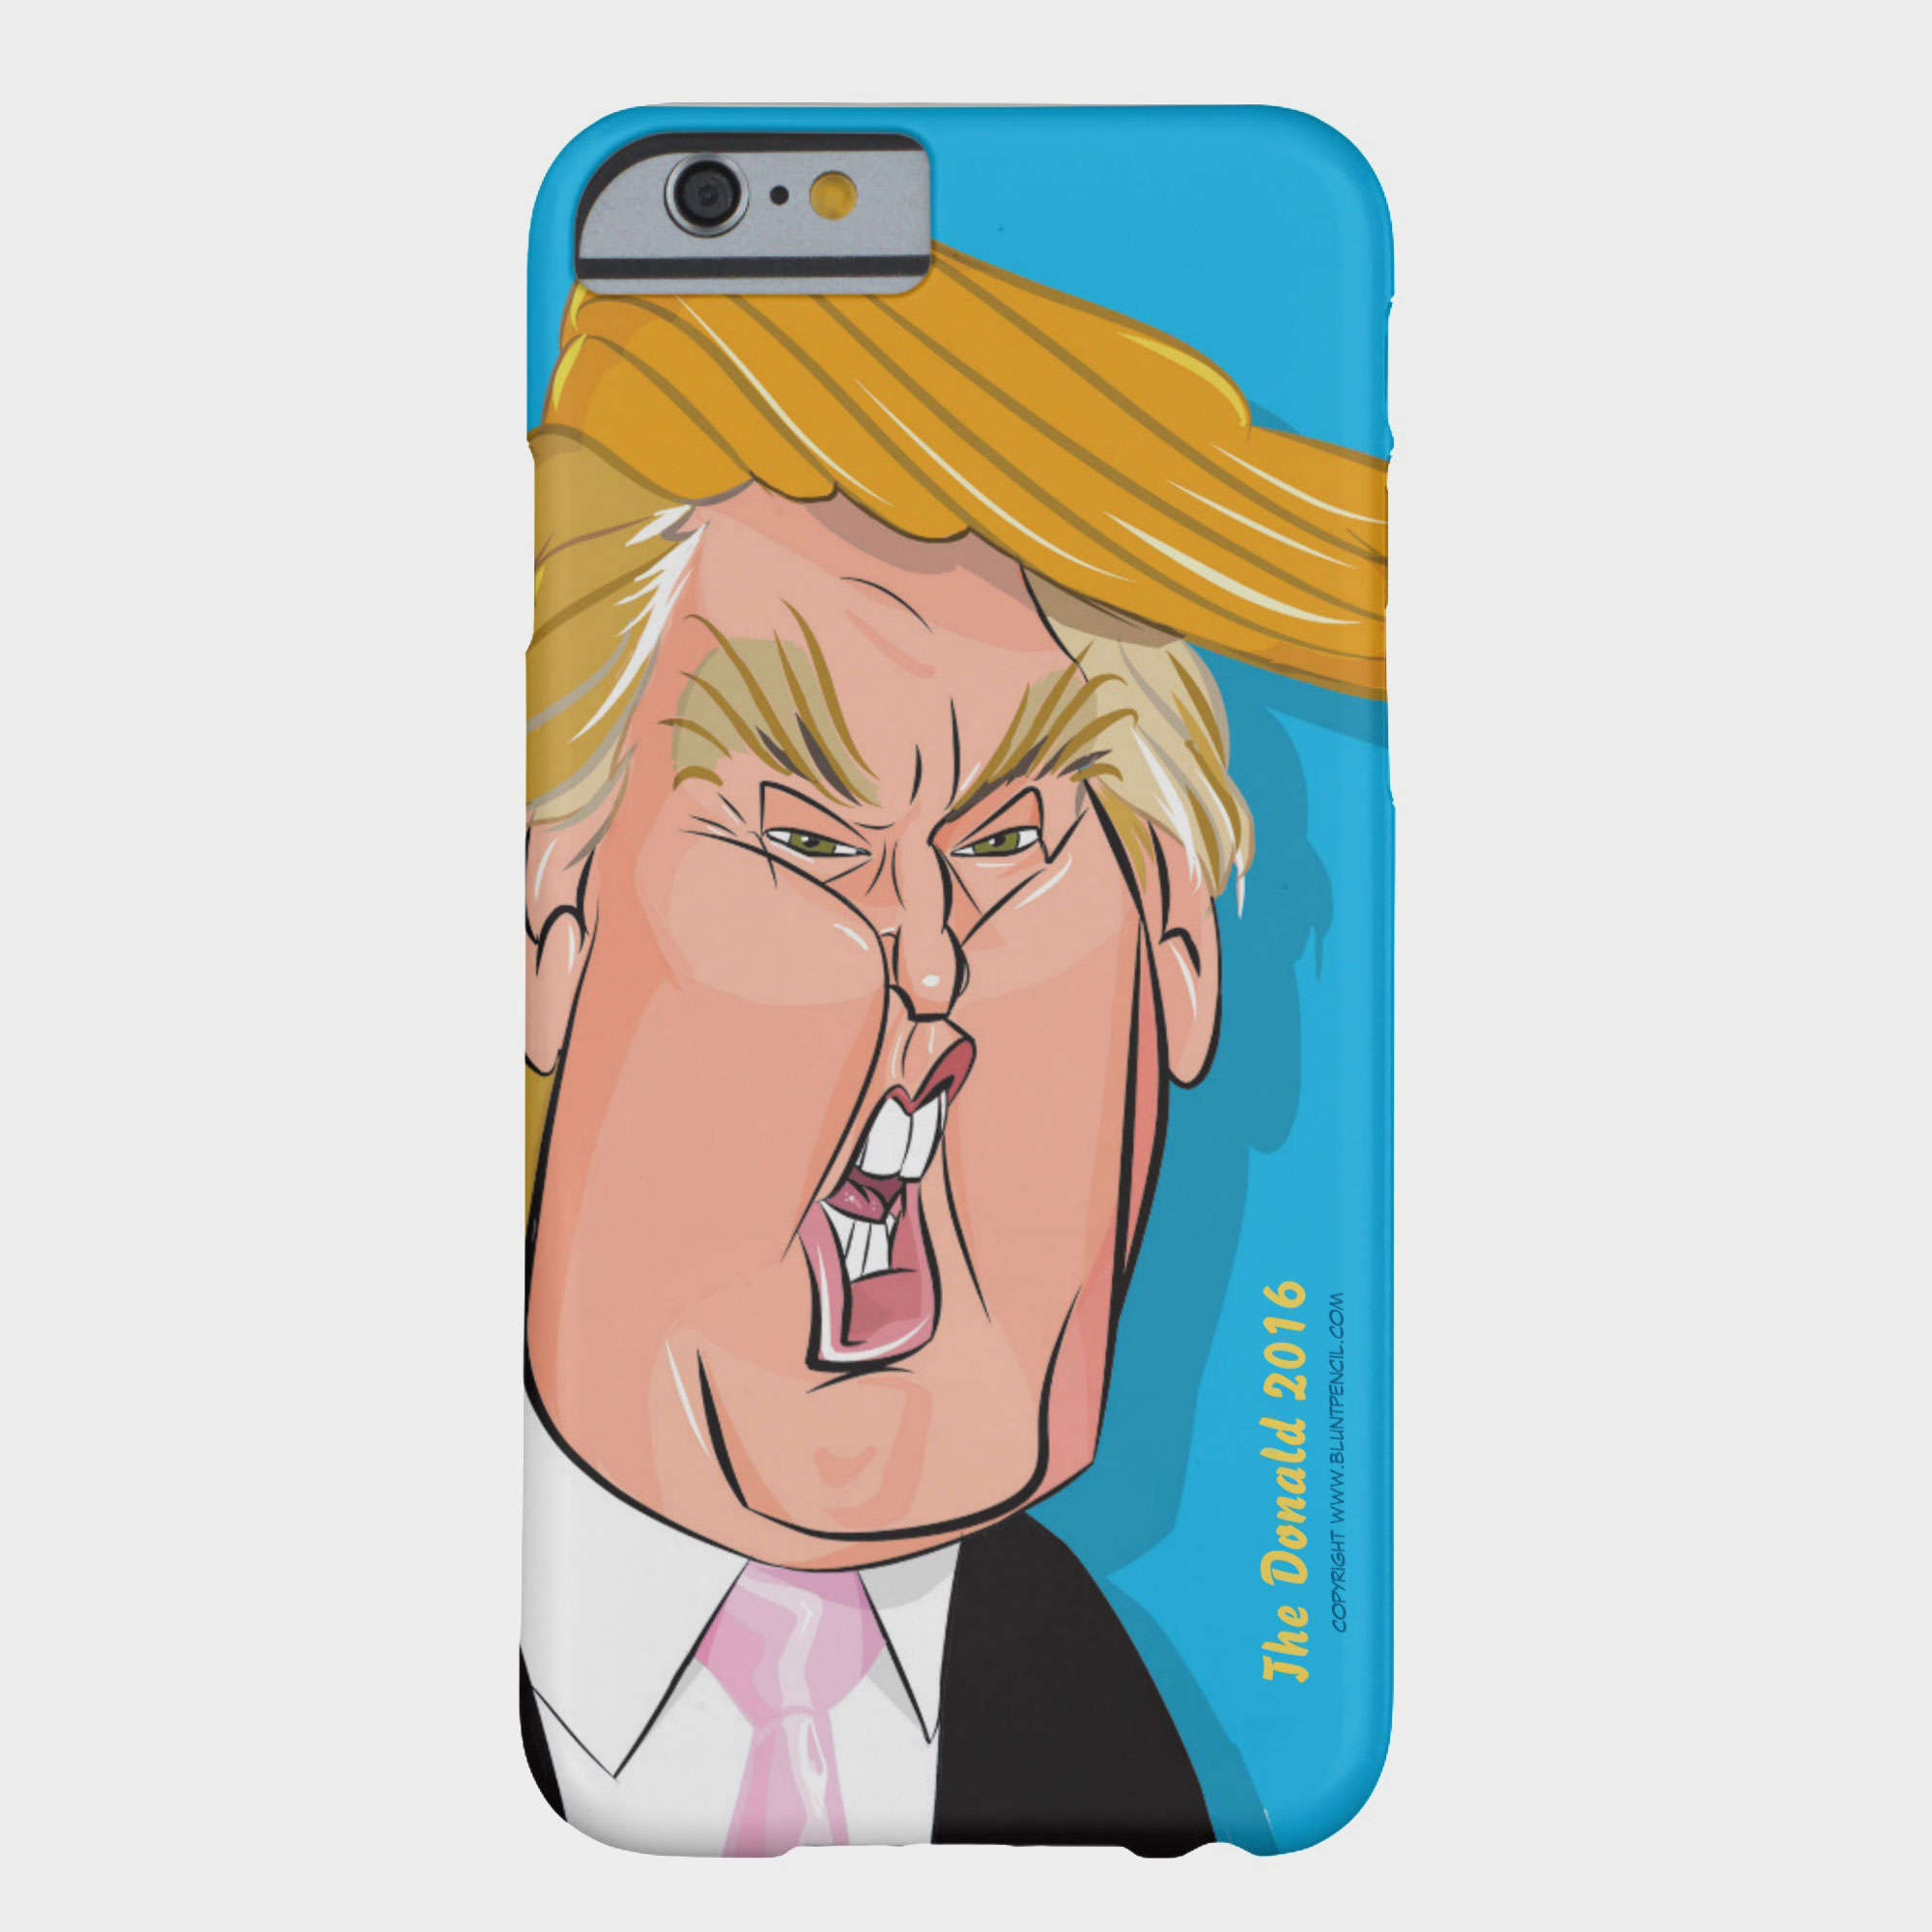 If you comb over the many smartphone cases at Zazzle, you will find this caricature of Donald Trump.